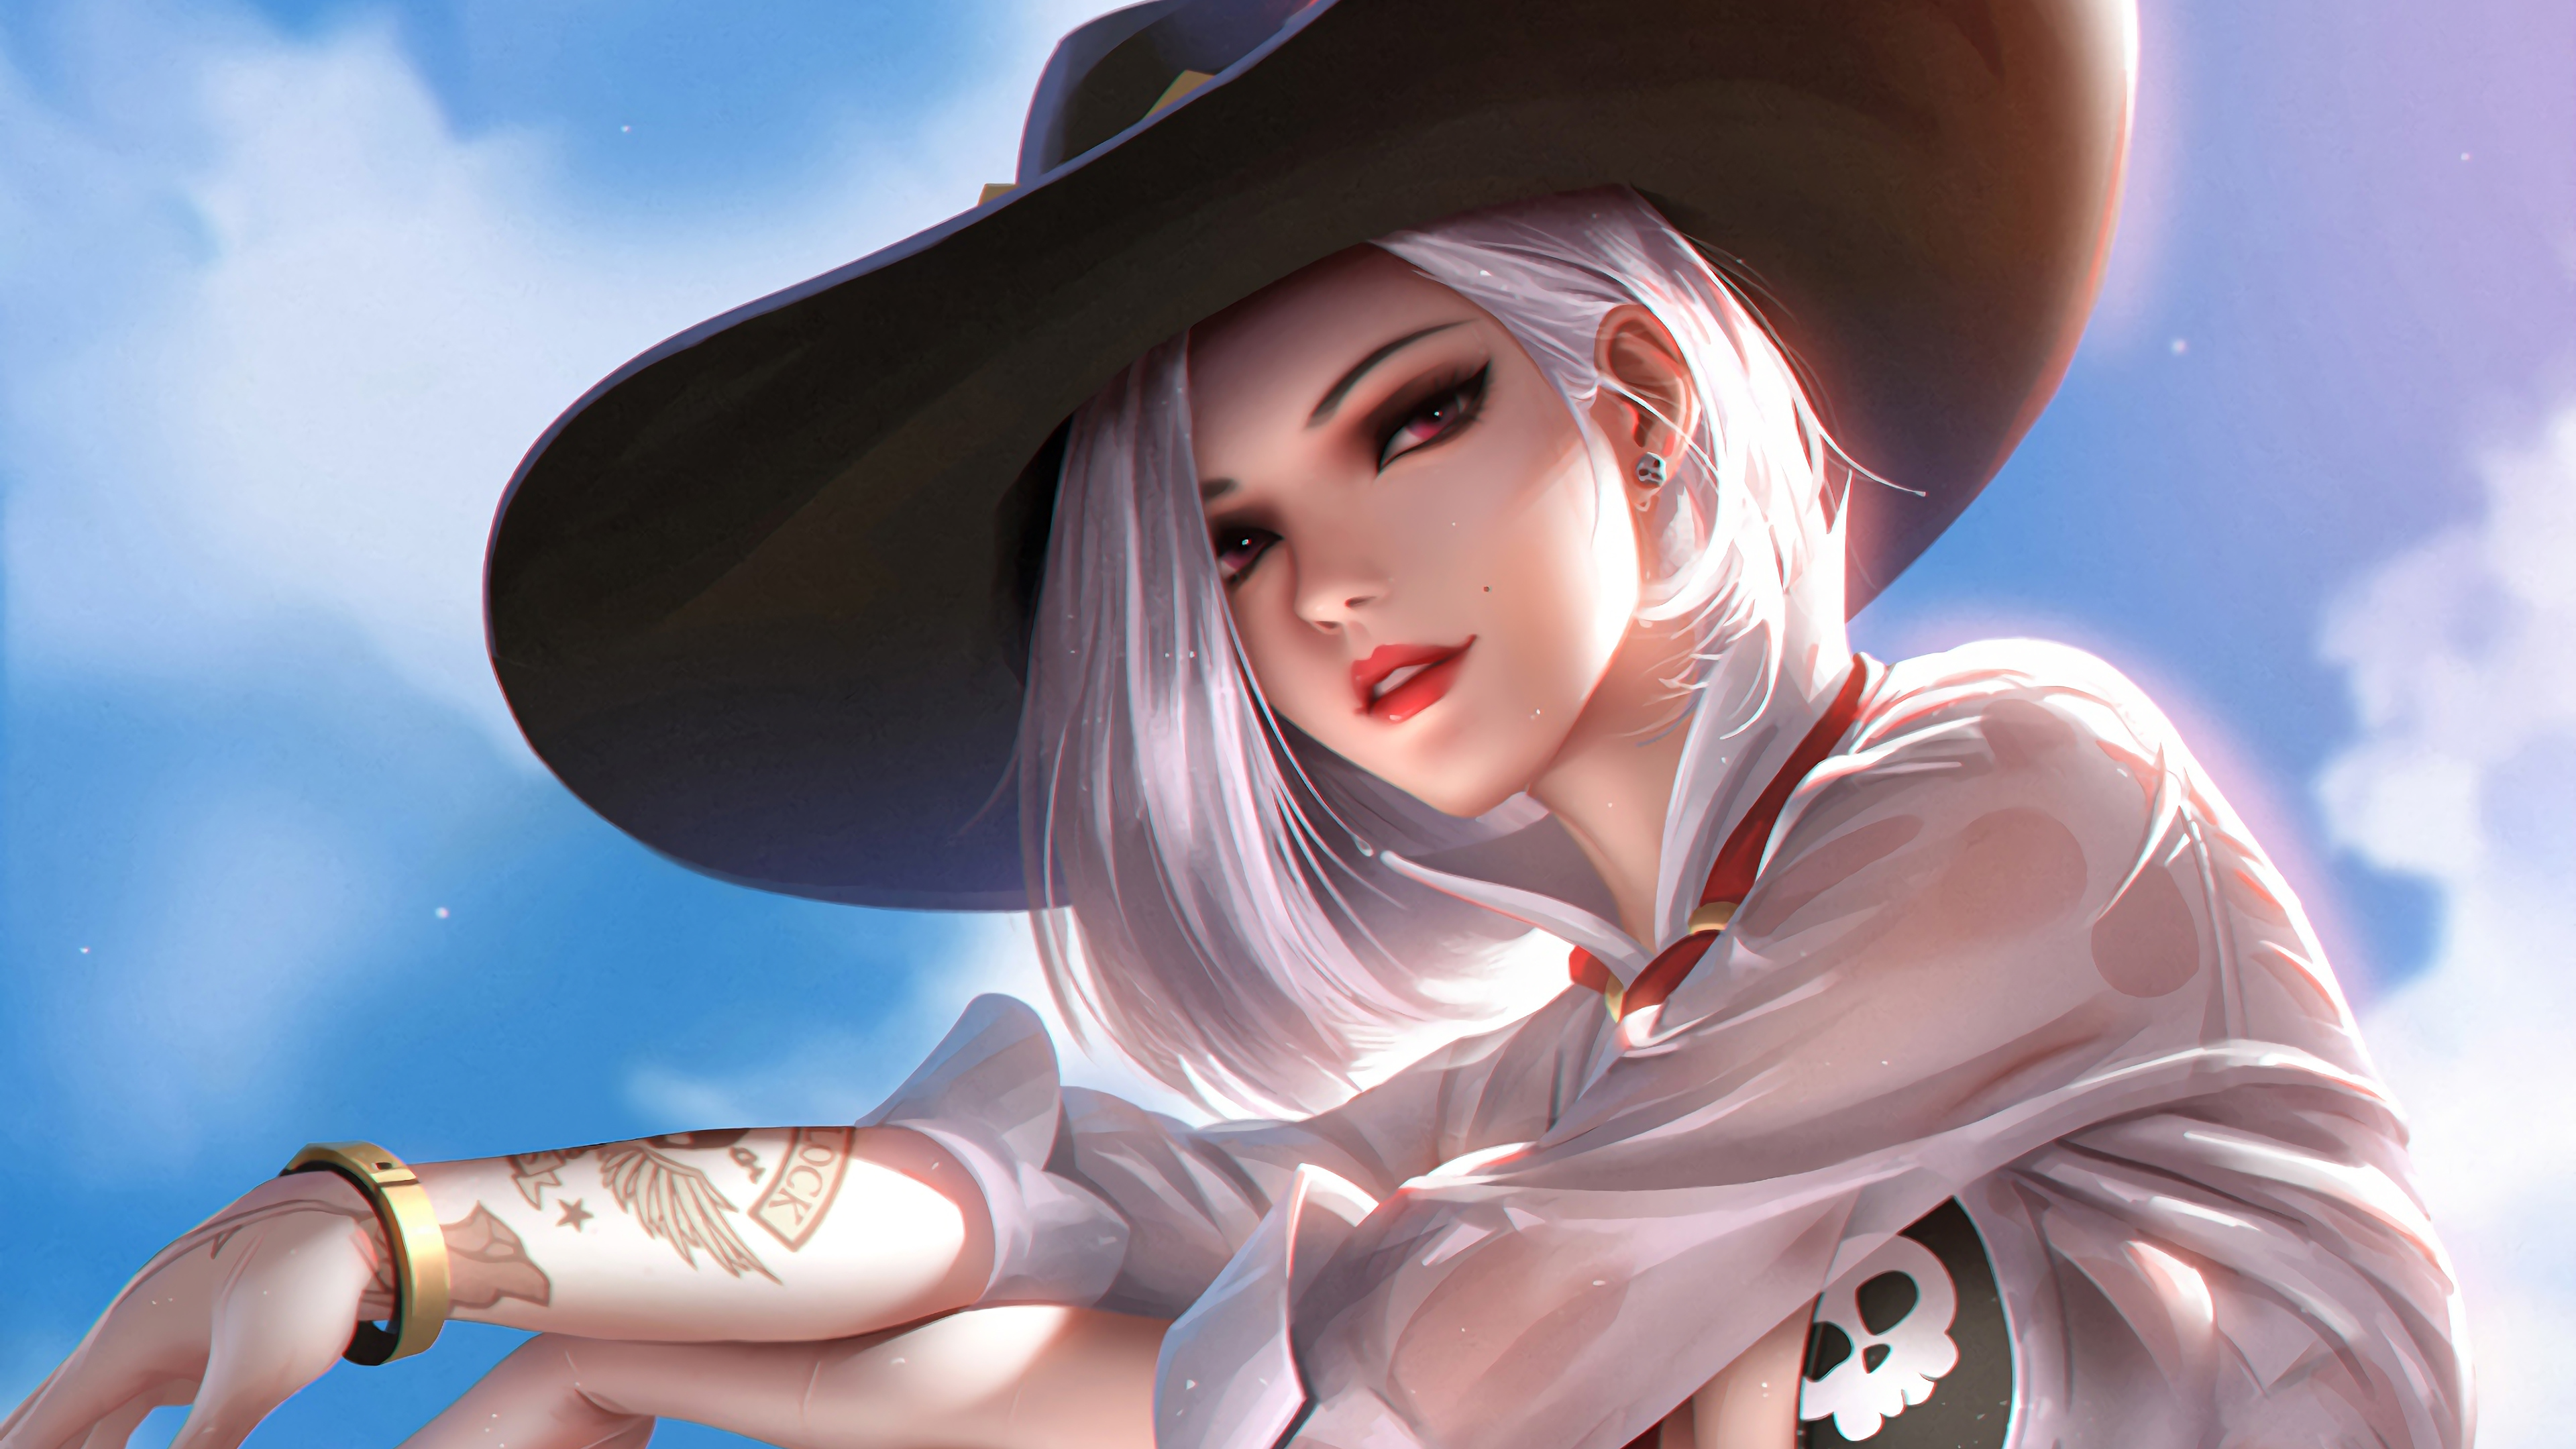 General 3840x2160 digital digital art artwork drawing digital painting fictional fictional character video game art video games video game characters video game girls women fantasy girl character design  Overwatch Blizzard Entertainment environment illustration Ashe Ashe (Overwatch) white hair red eyes summer portrait